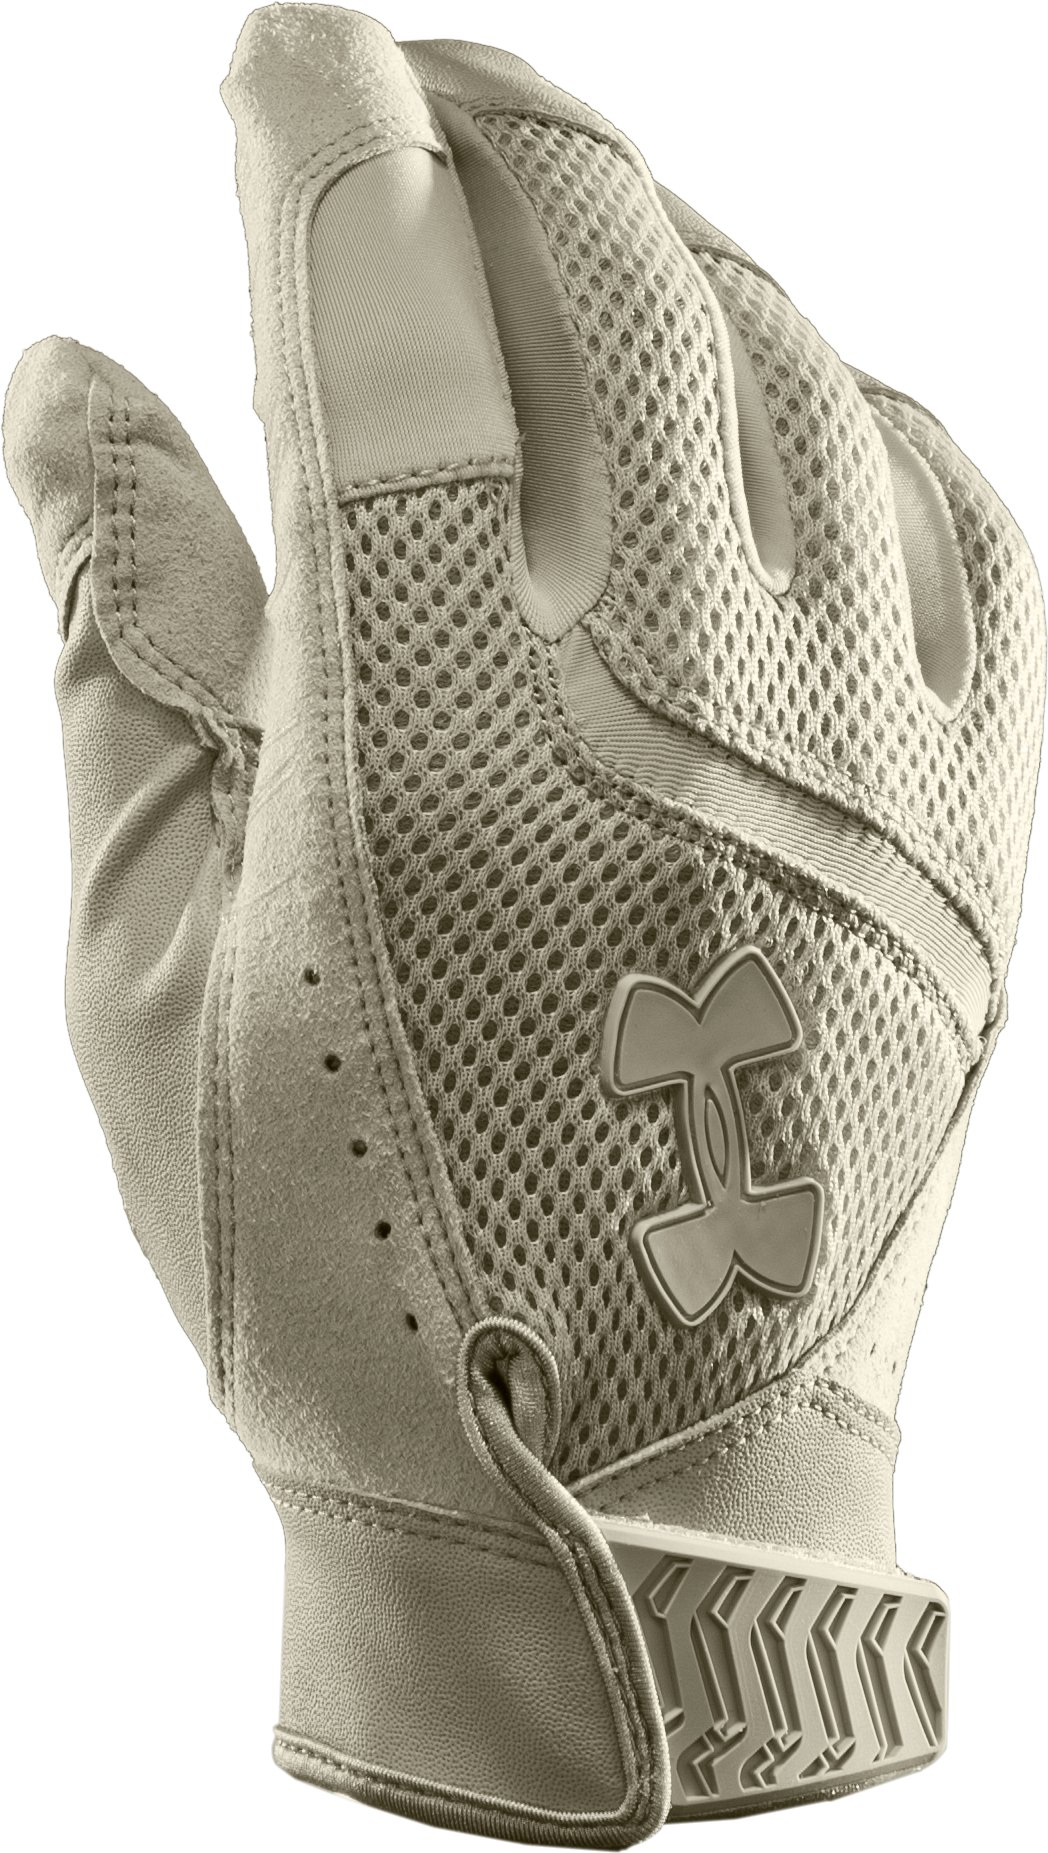 Men's Tactical Summer Blackout Glove, Desert Sand